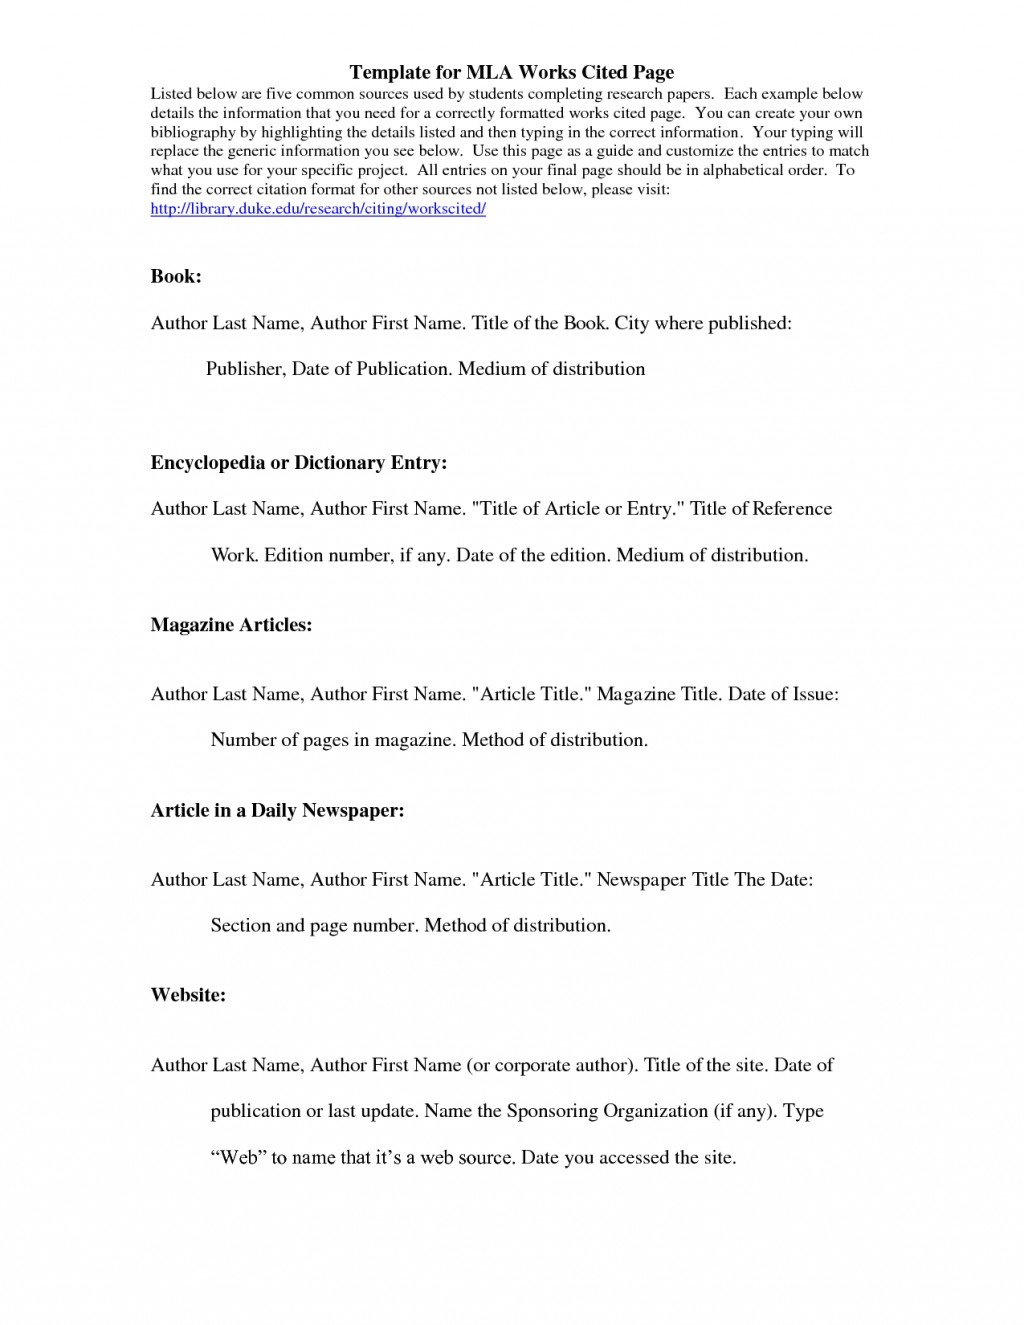 023 Ideas Collection Writing Research Papers Using Mla Documentation Magnificent Sample Pages Of Paper In Style Shocking Examples Example Format Works Cited Cover Page Large